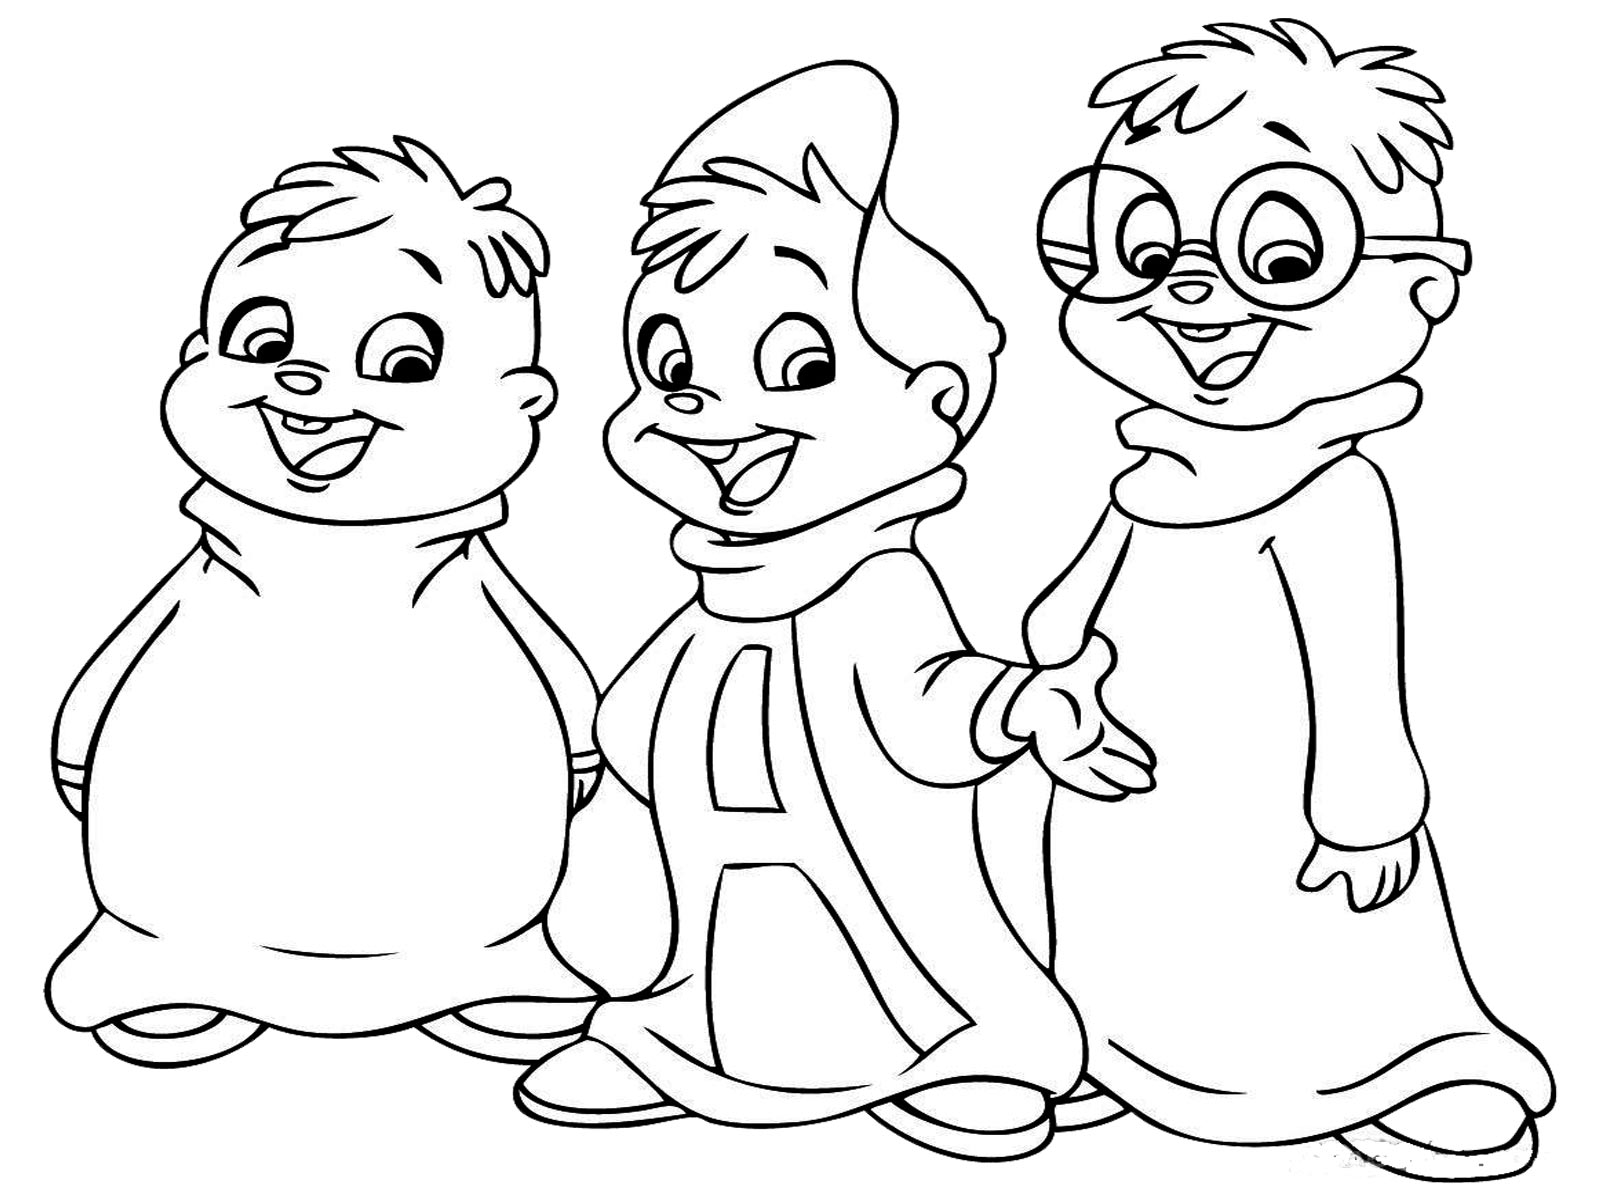 1600x1200 Alvin And The Chipmunks Coloring Pages